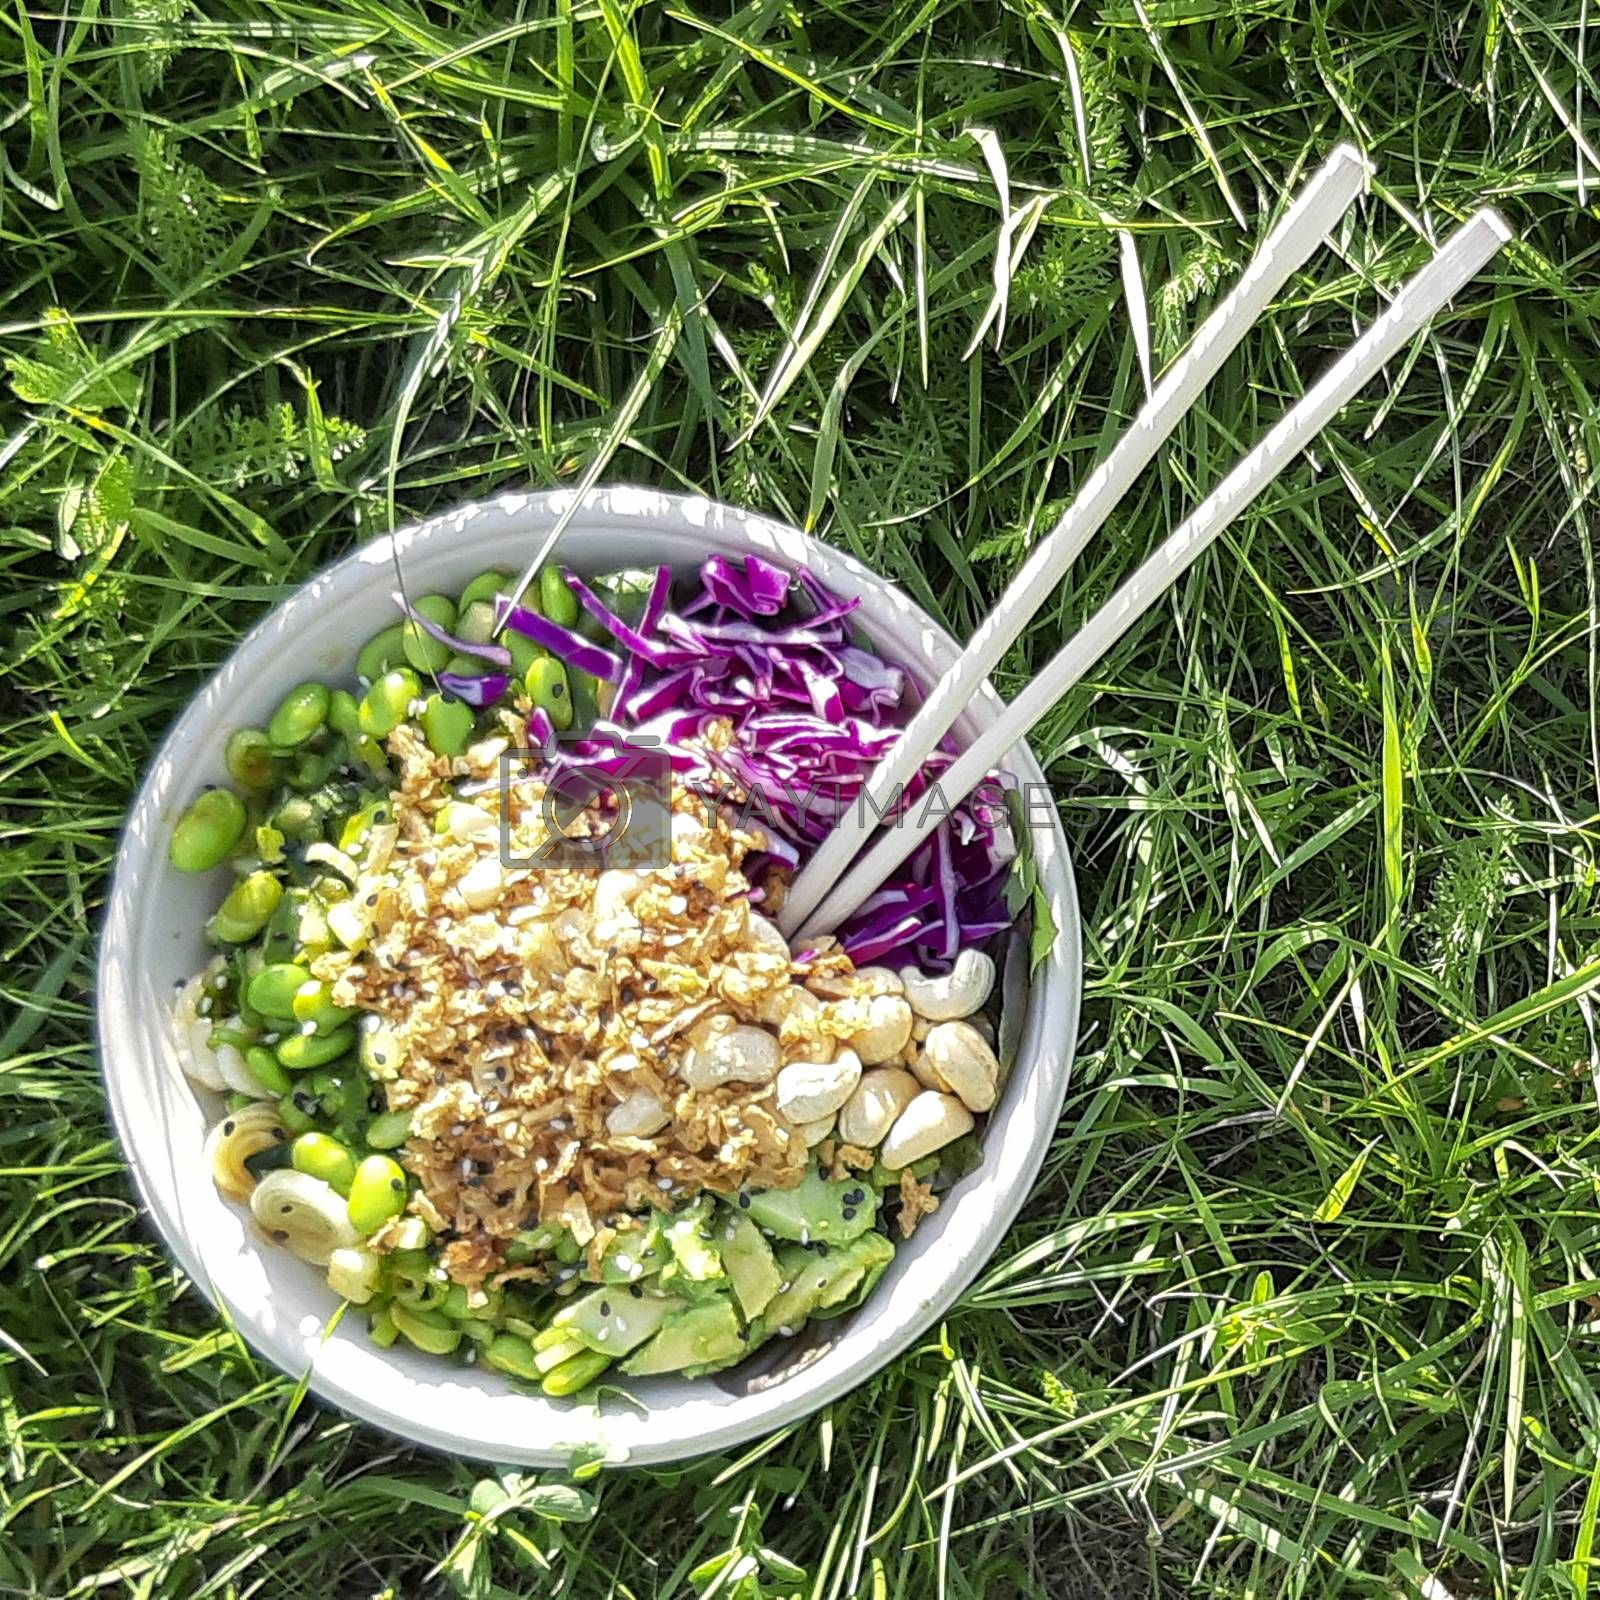 Vegan poke bowl, Hawaiian dish, with chopsticks in the grass. Cashew nuts, avocado, Red cabbage, Onion and Edamame